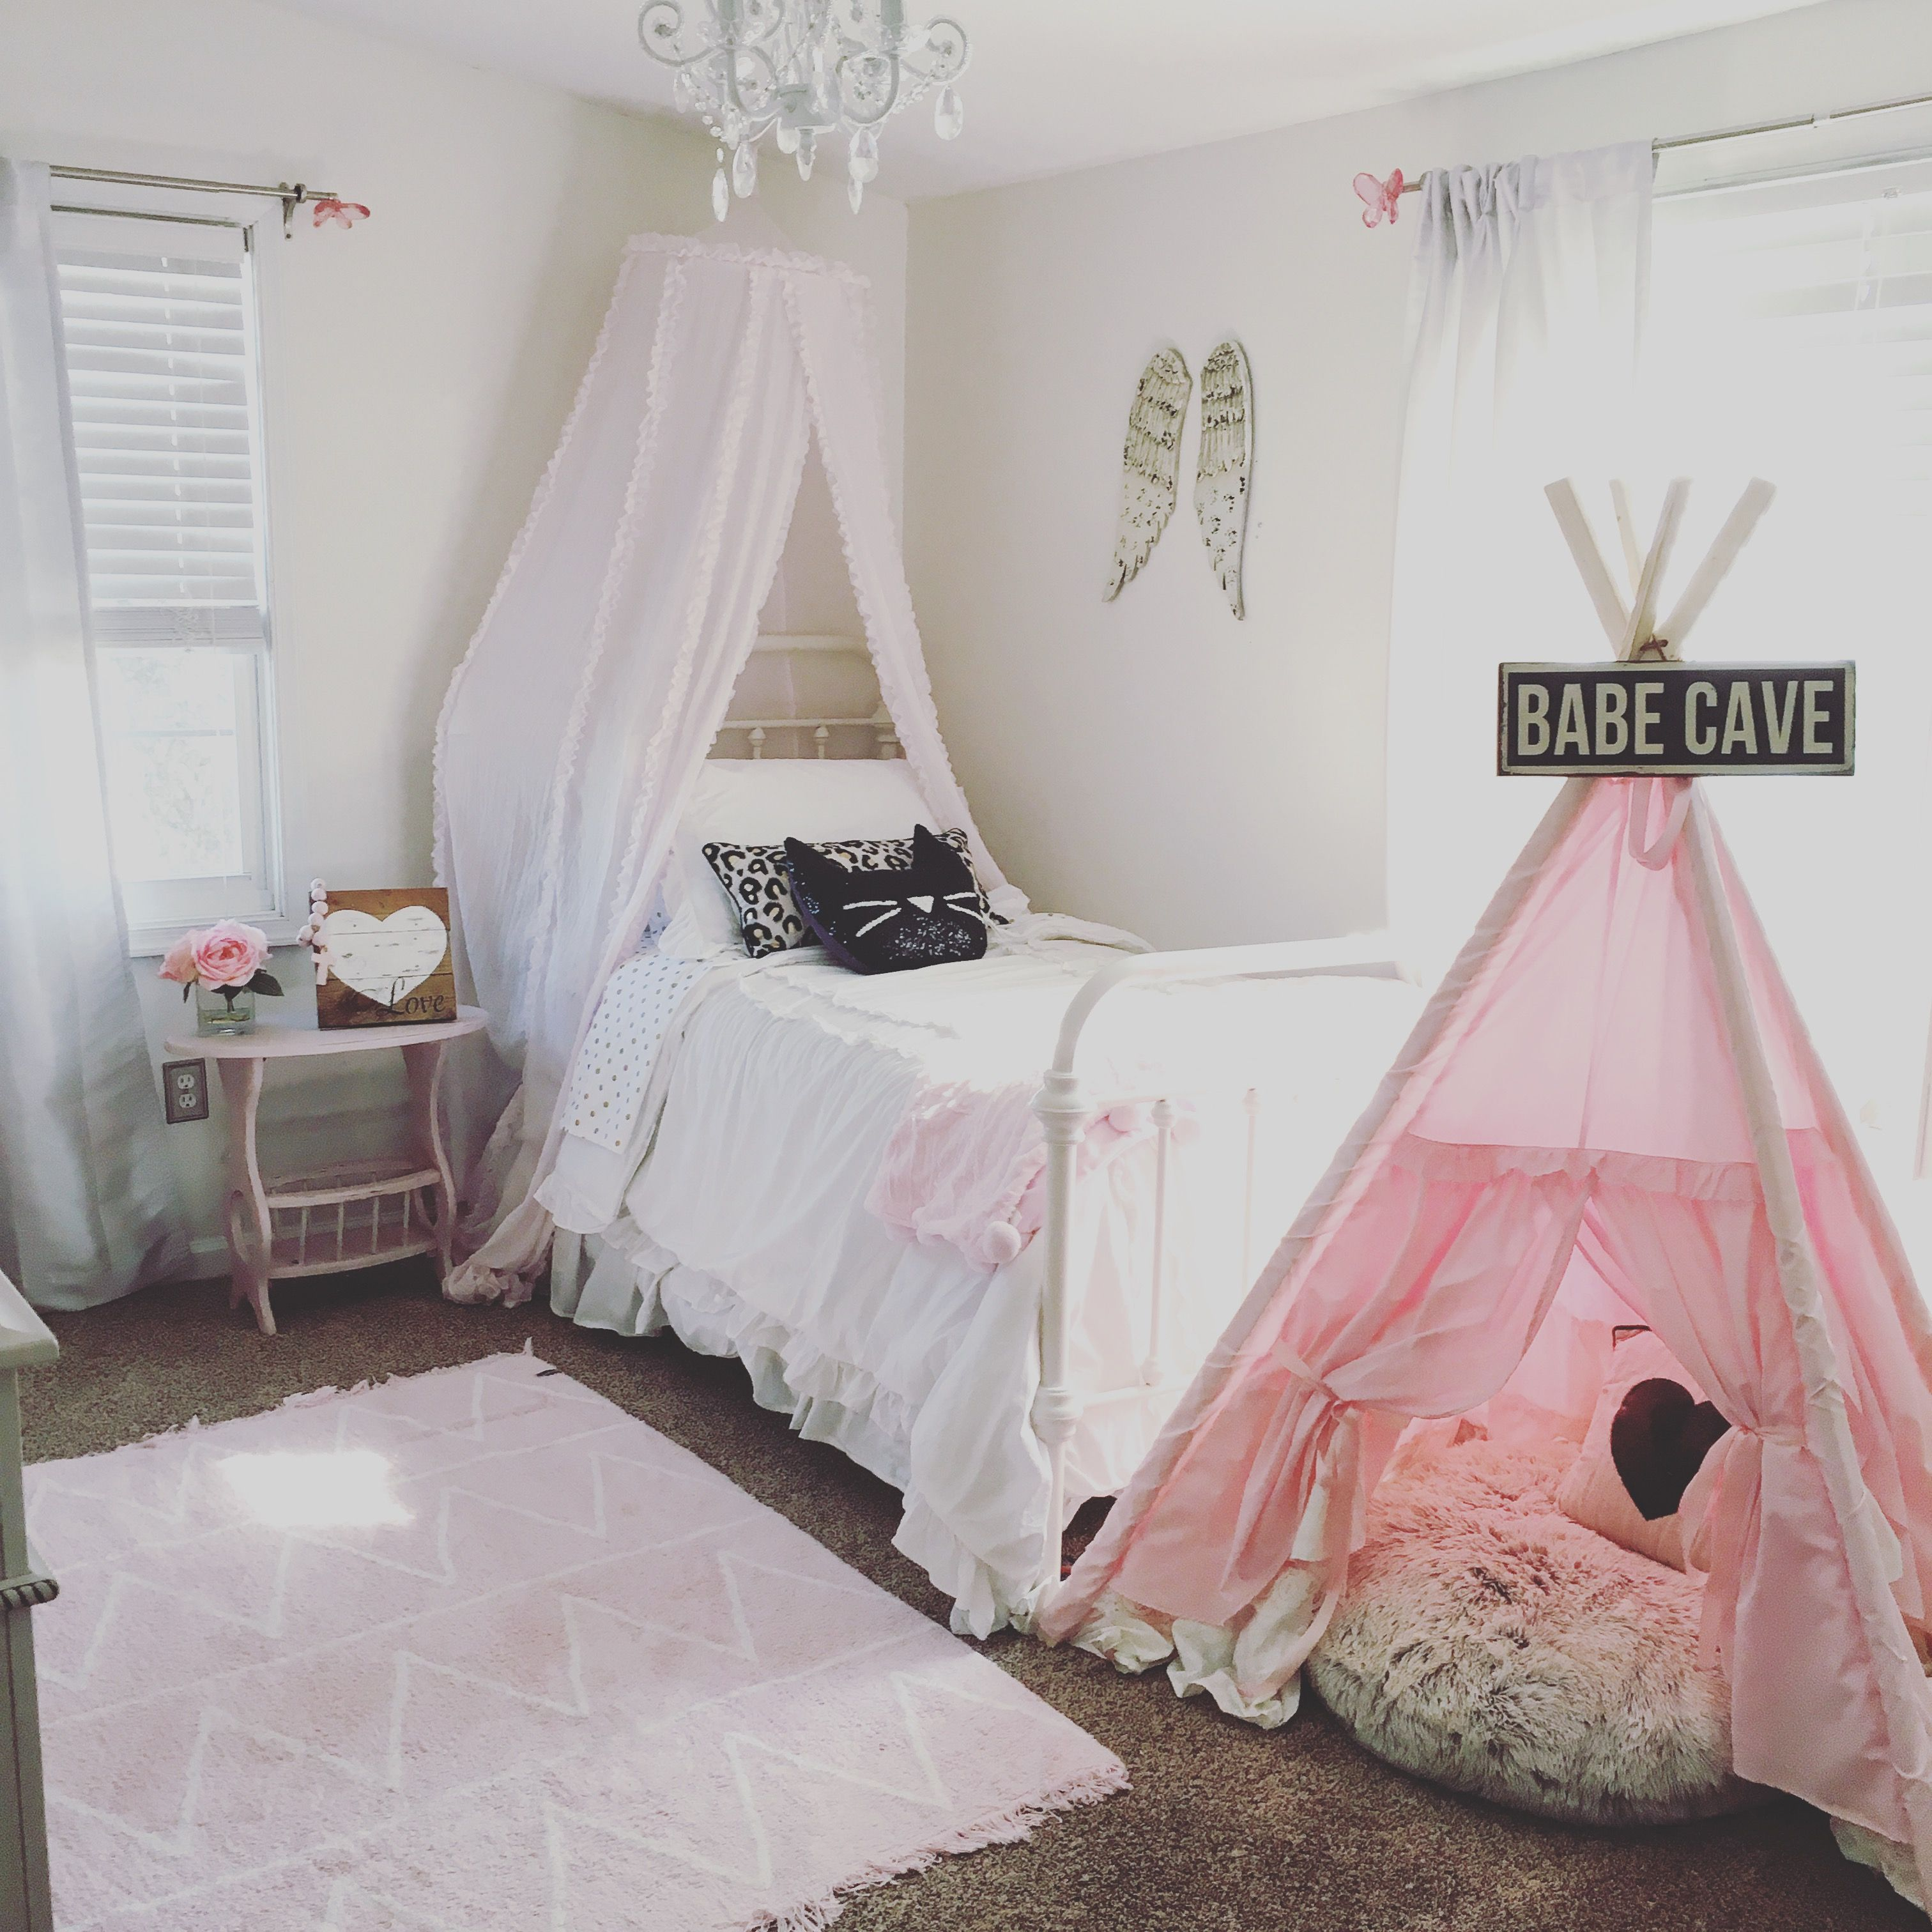 Vintage Style Kids Room: Farmhouse Style Pink And White Vintage Little Girls Room